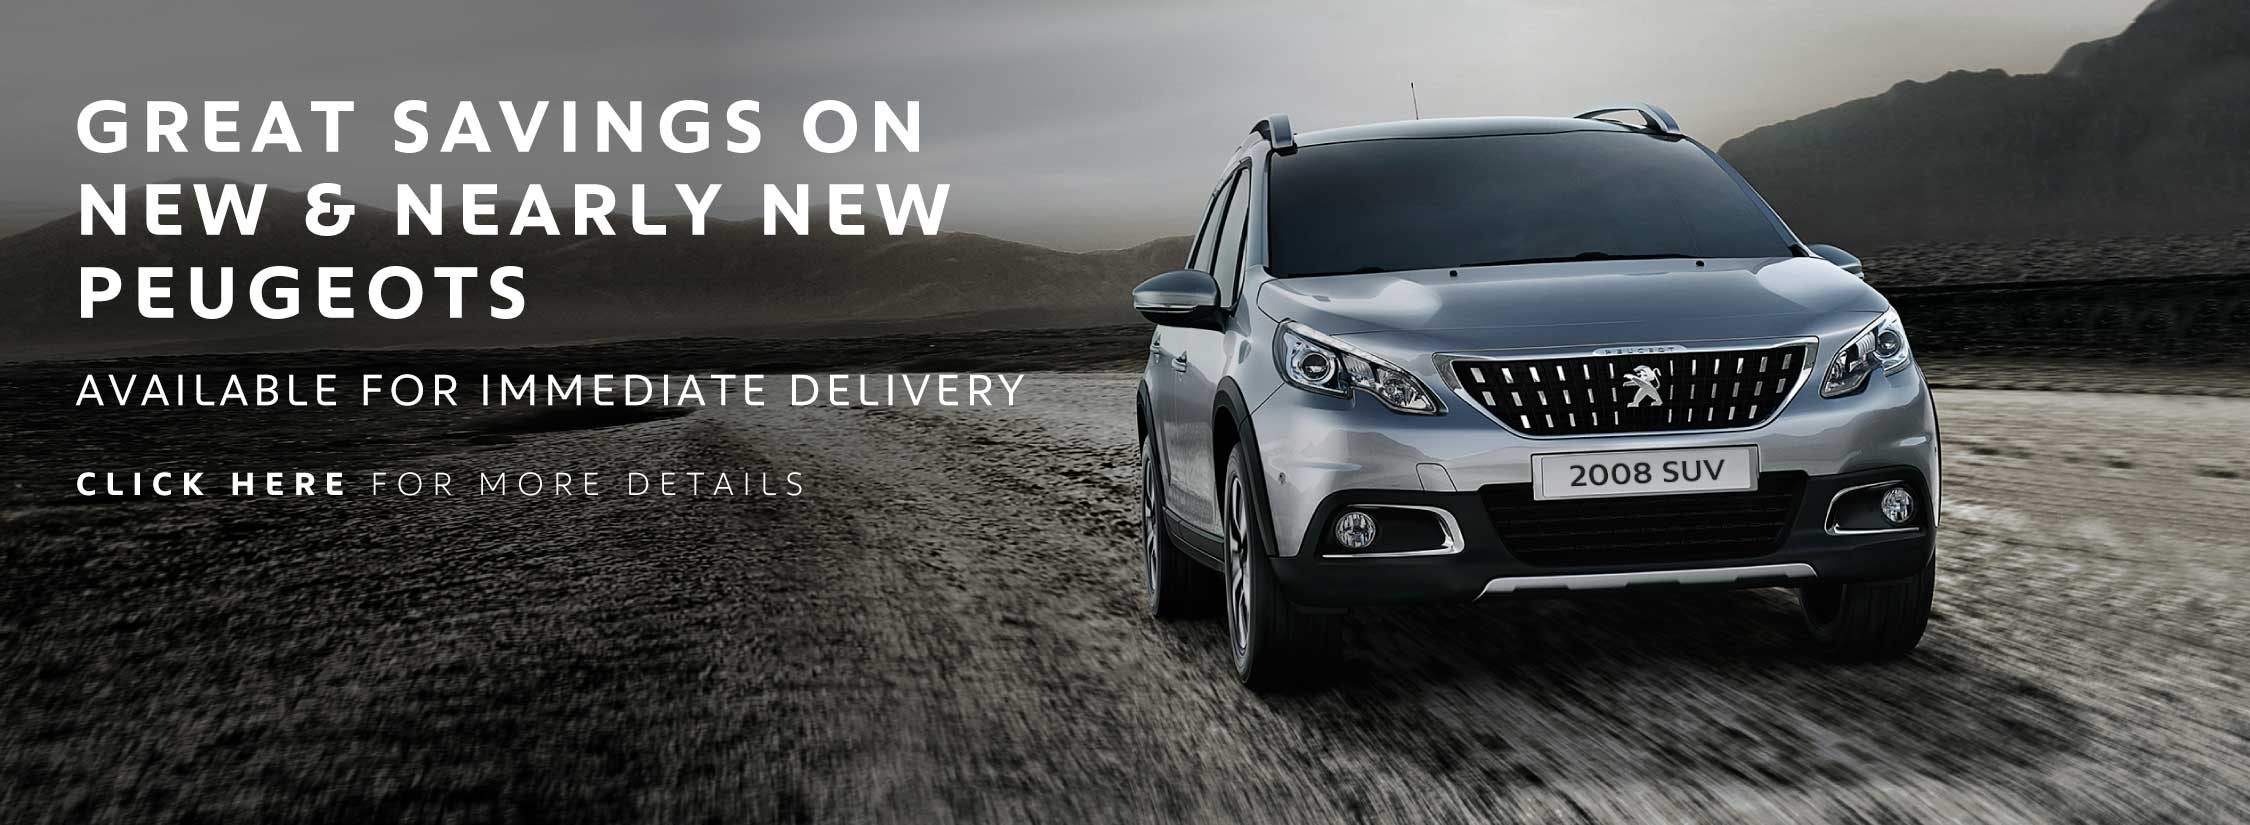 Peugeot Manager Specials Offers